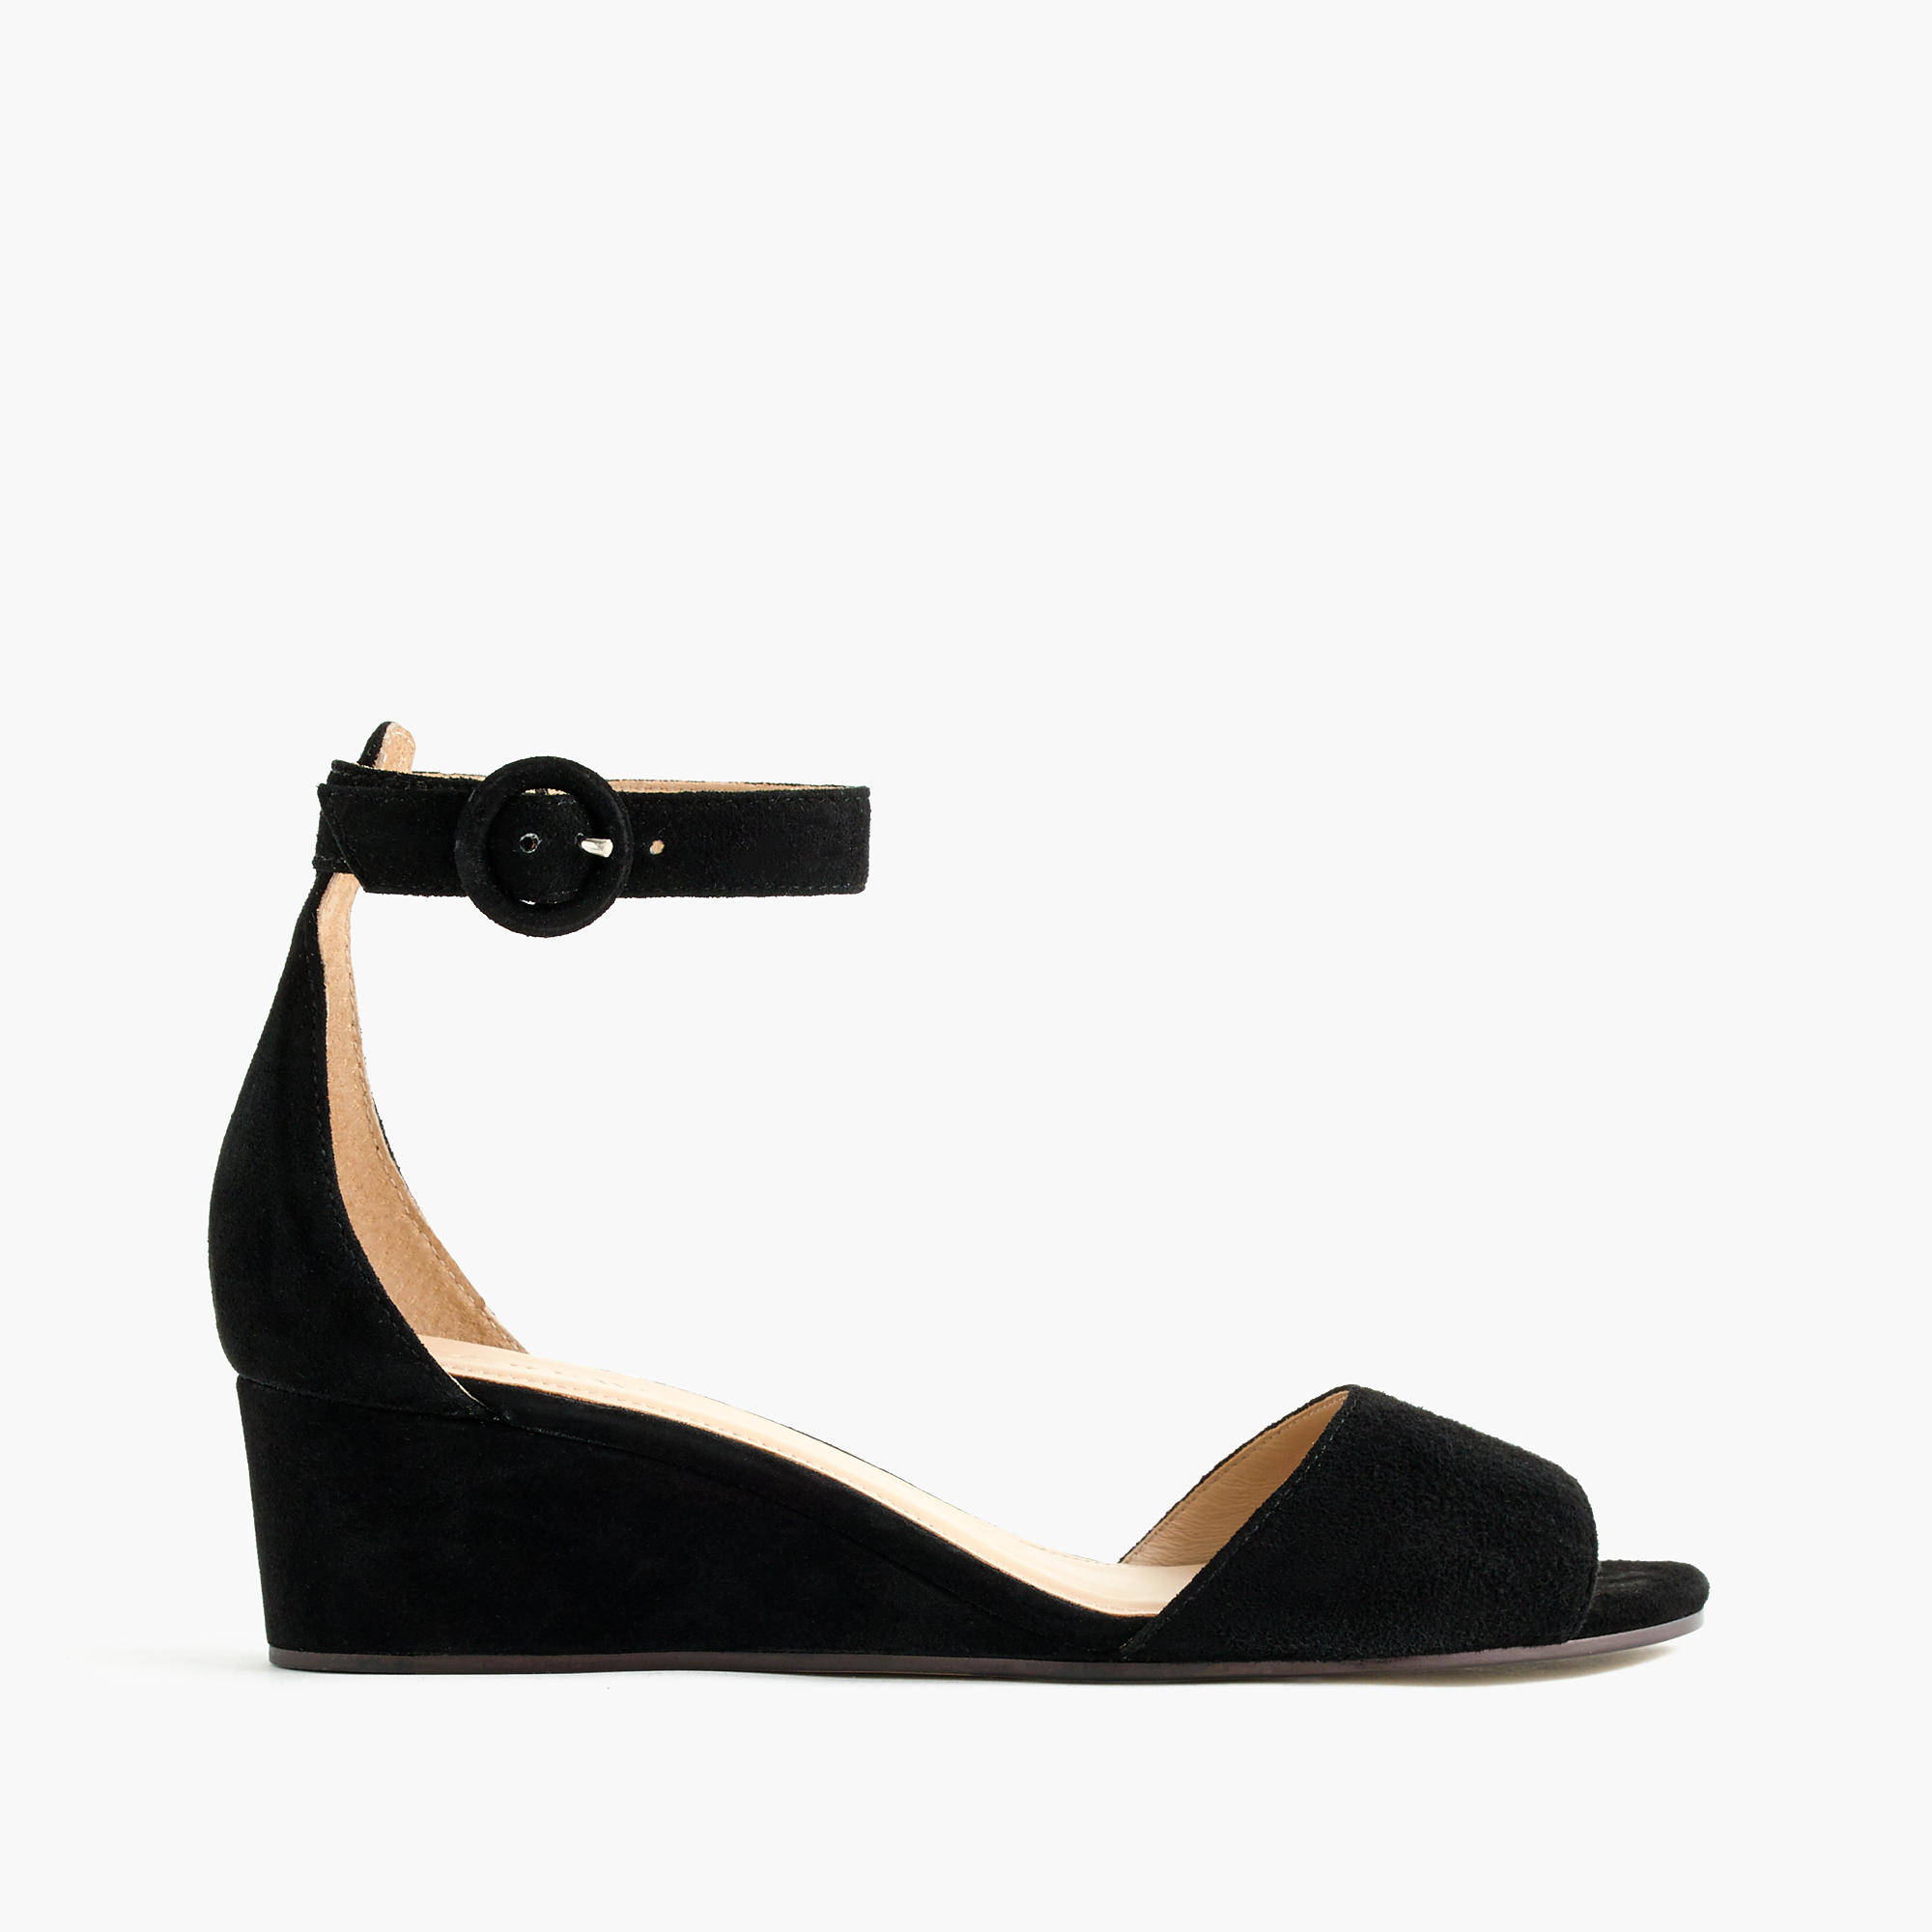 e7a13f08012cdd Lyst - J.Crew Laila Wedges In Suede in Black